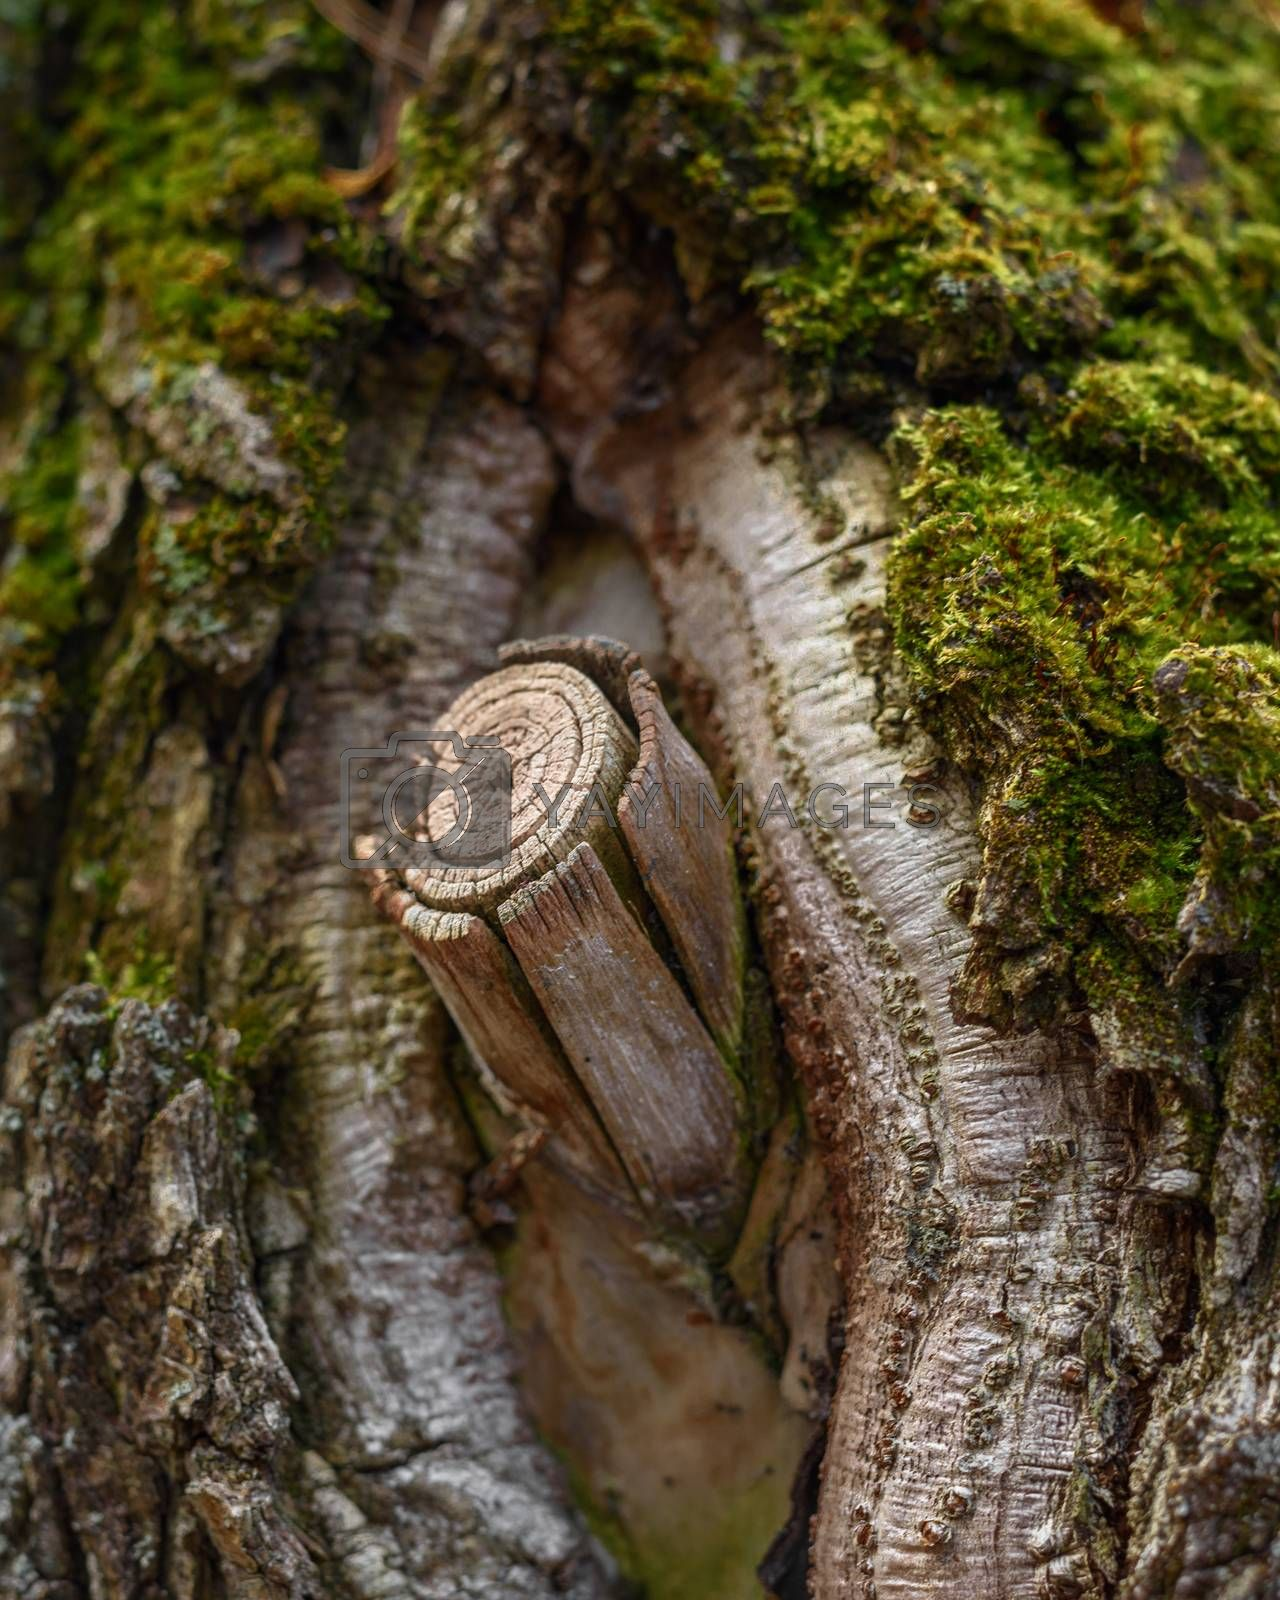 Royalty free image of A twig on an old tree, close-up by VladimirZubkov